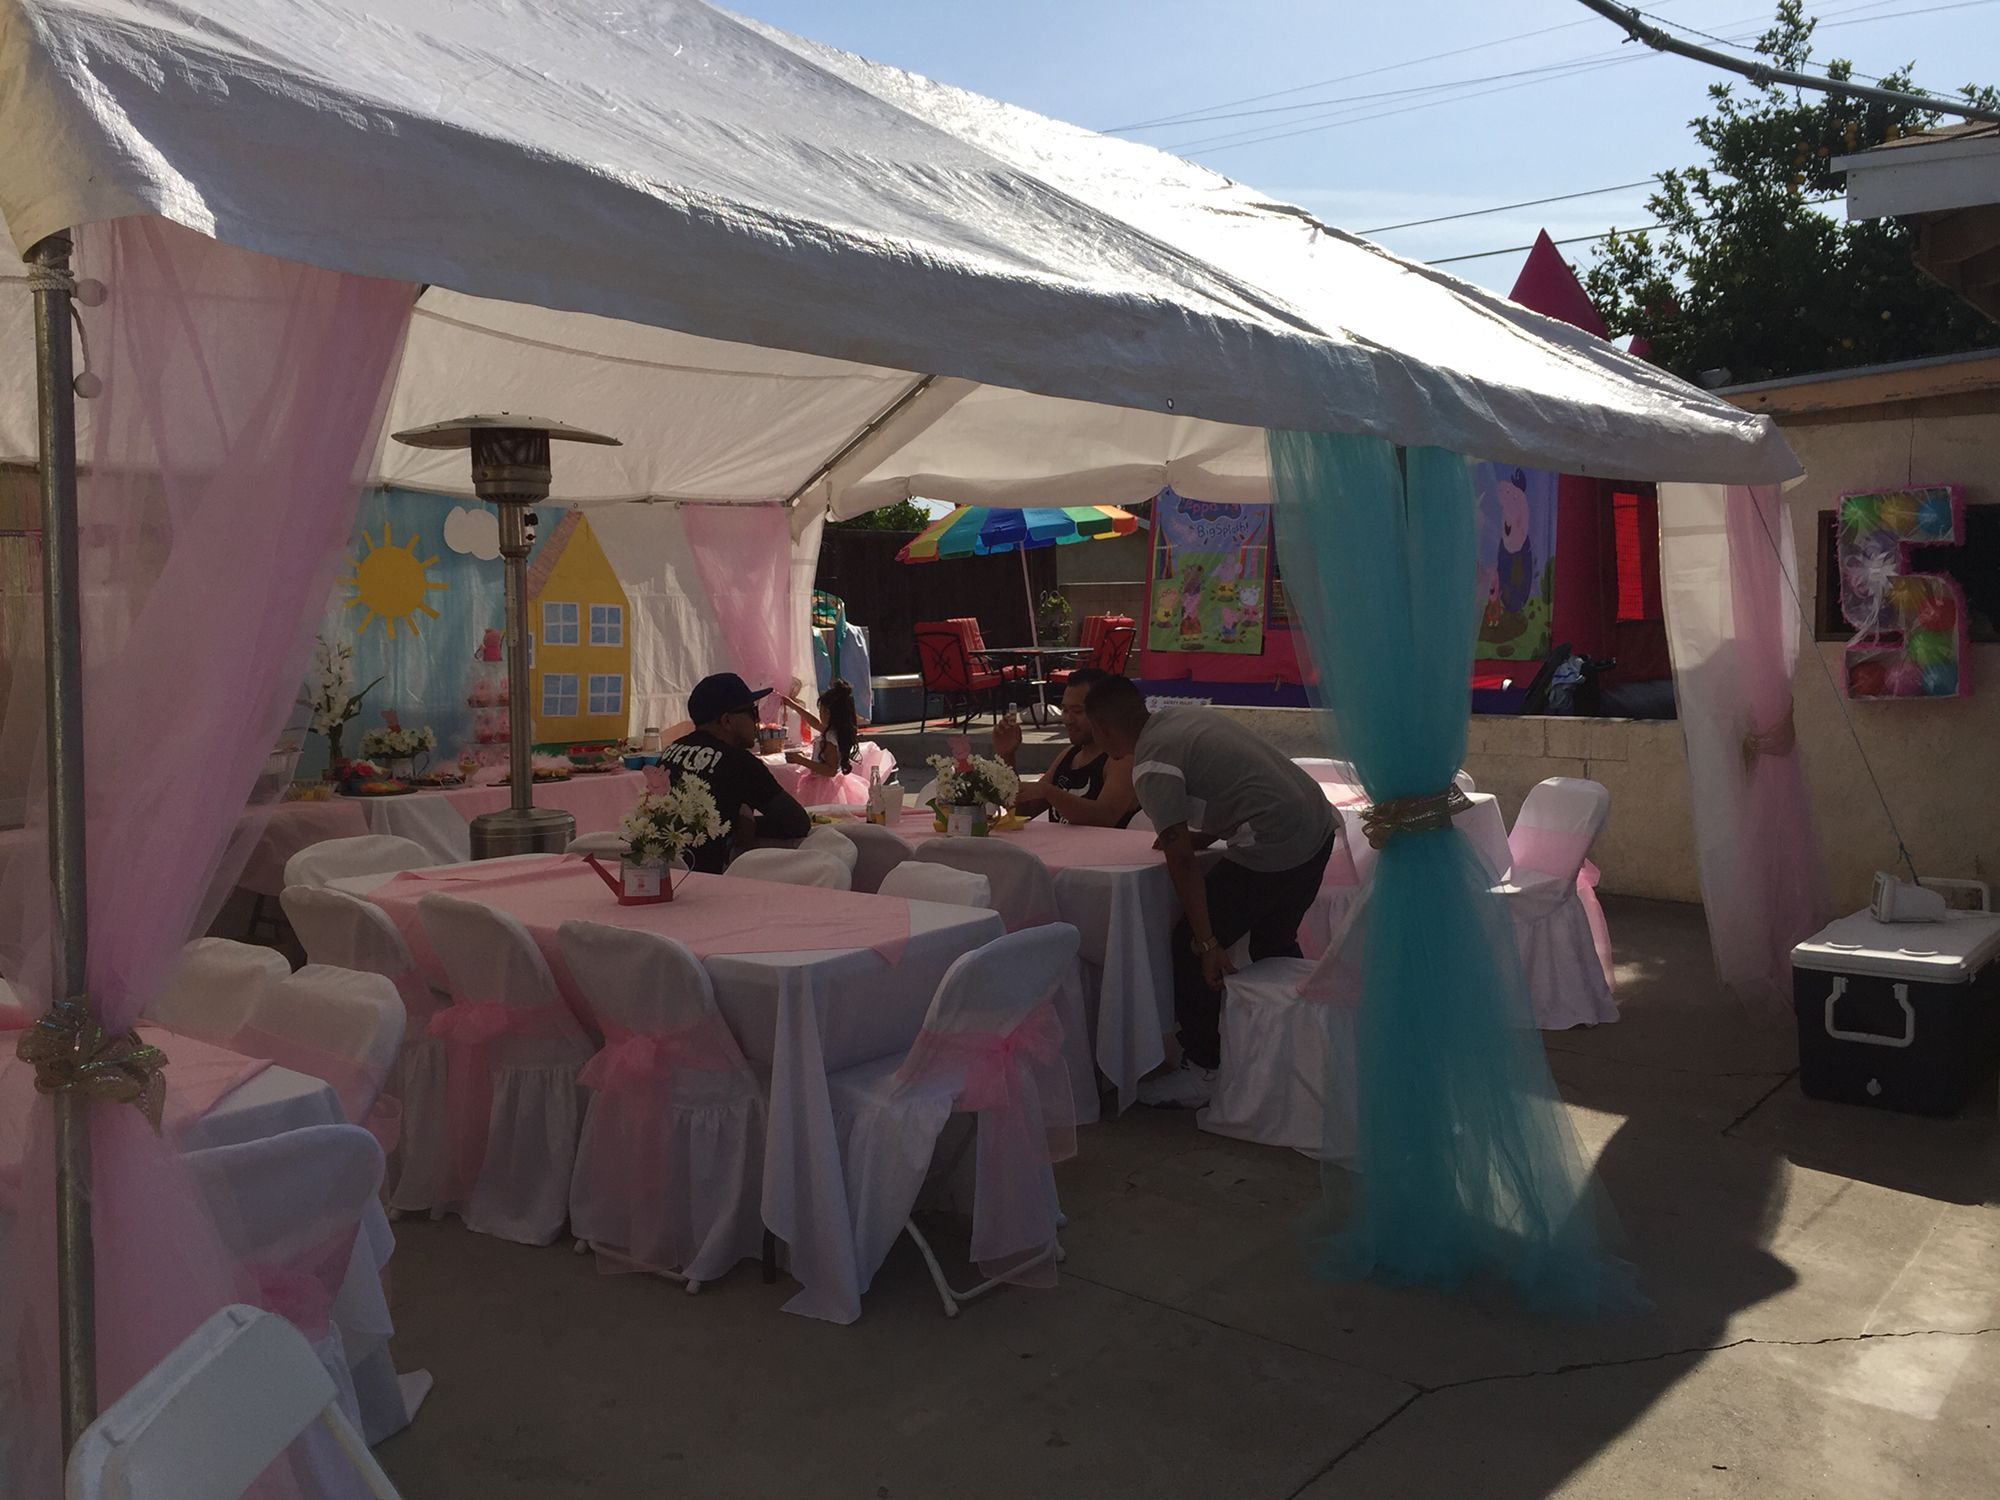 Peppa pig party tent decorations & Peppa pig party tent decorations | Girls birthday party decorating ...